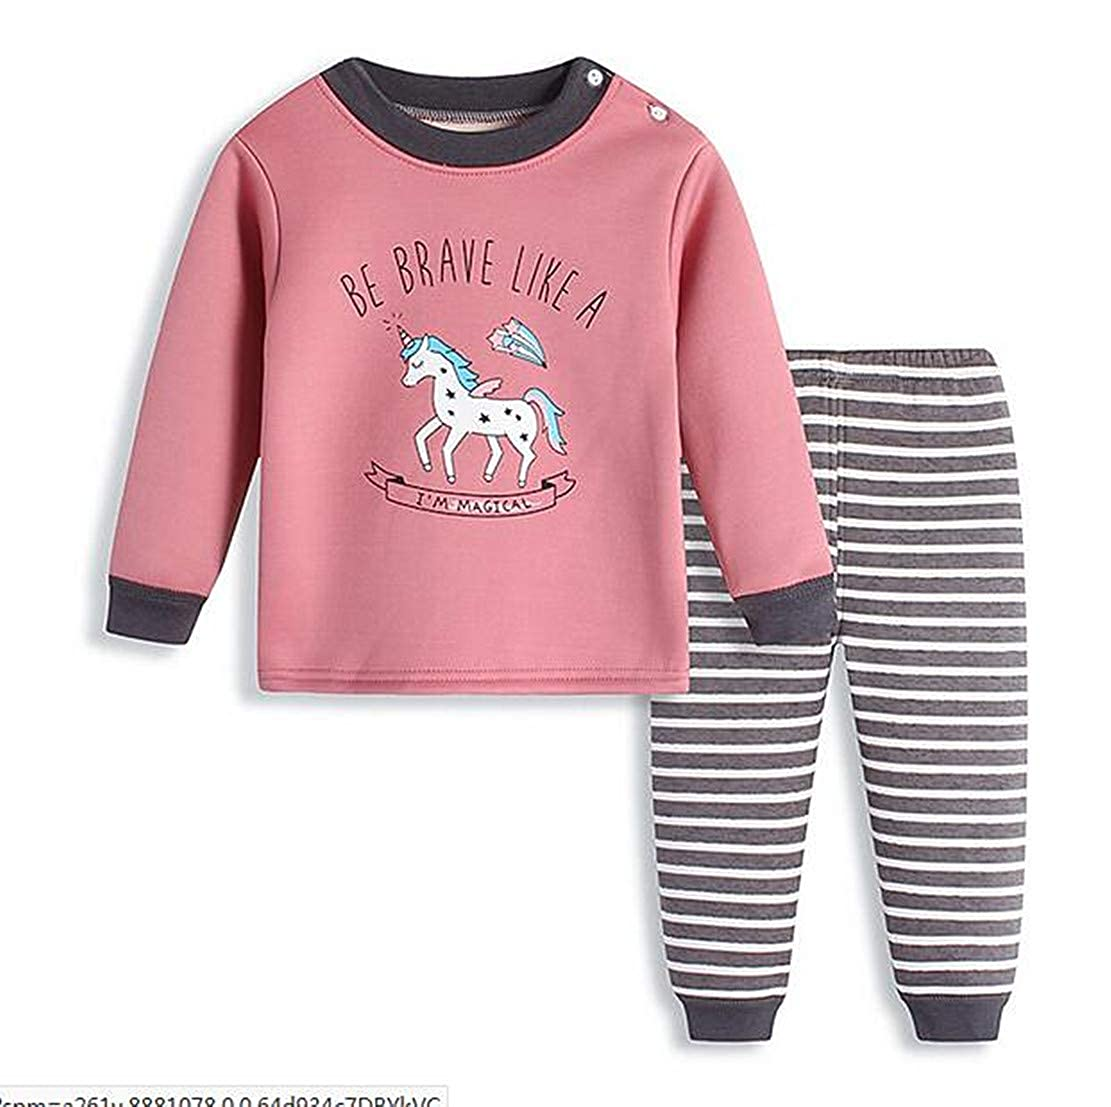 CX.AZUL Girls Winter 2pcs Long Sleeve Warm Button Sleeper Pajamas Pants Suit Set